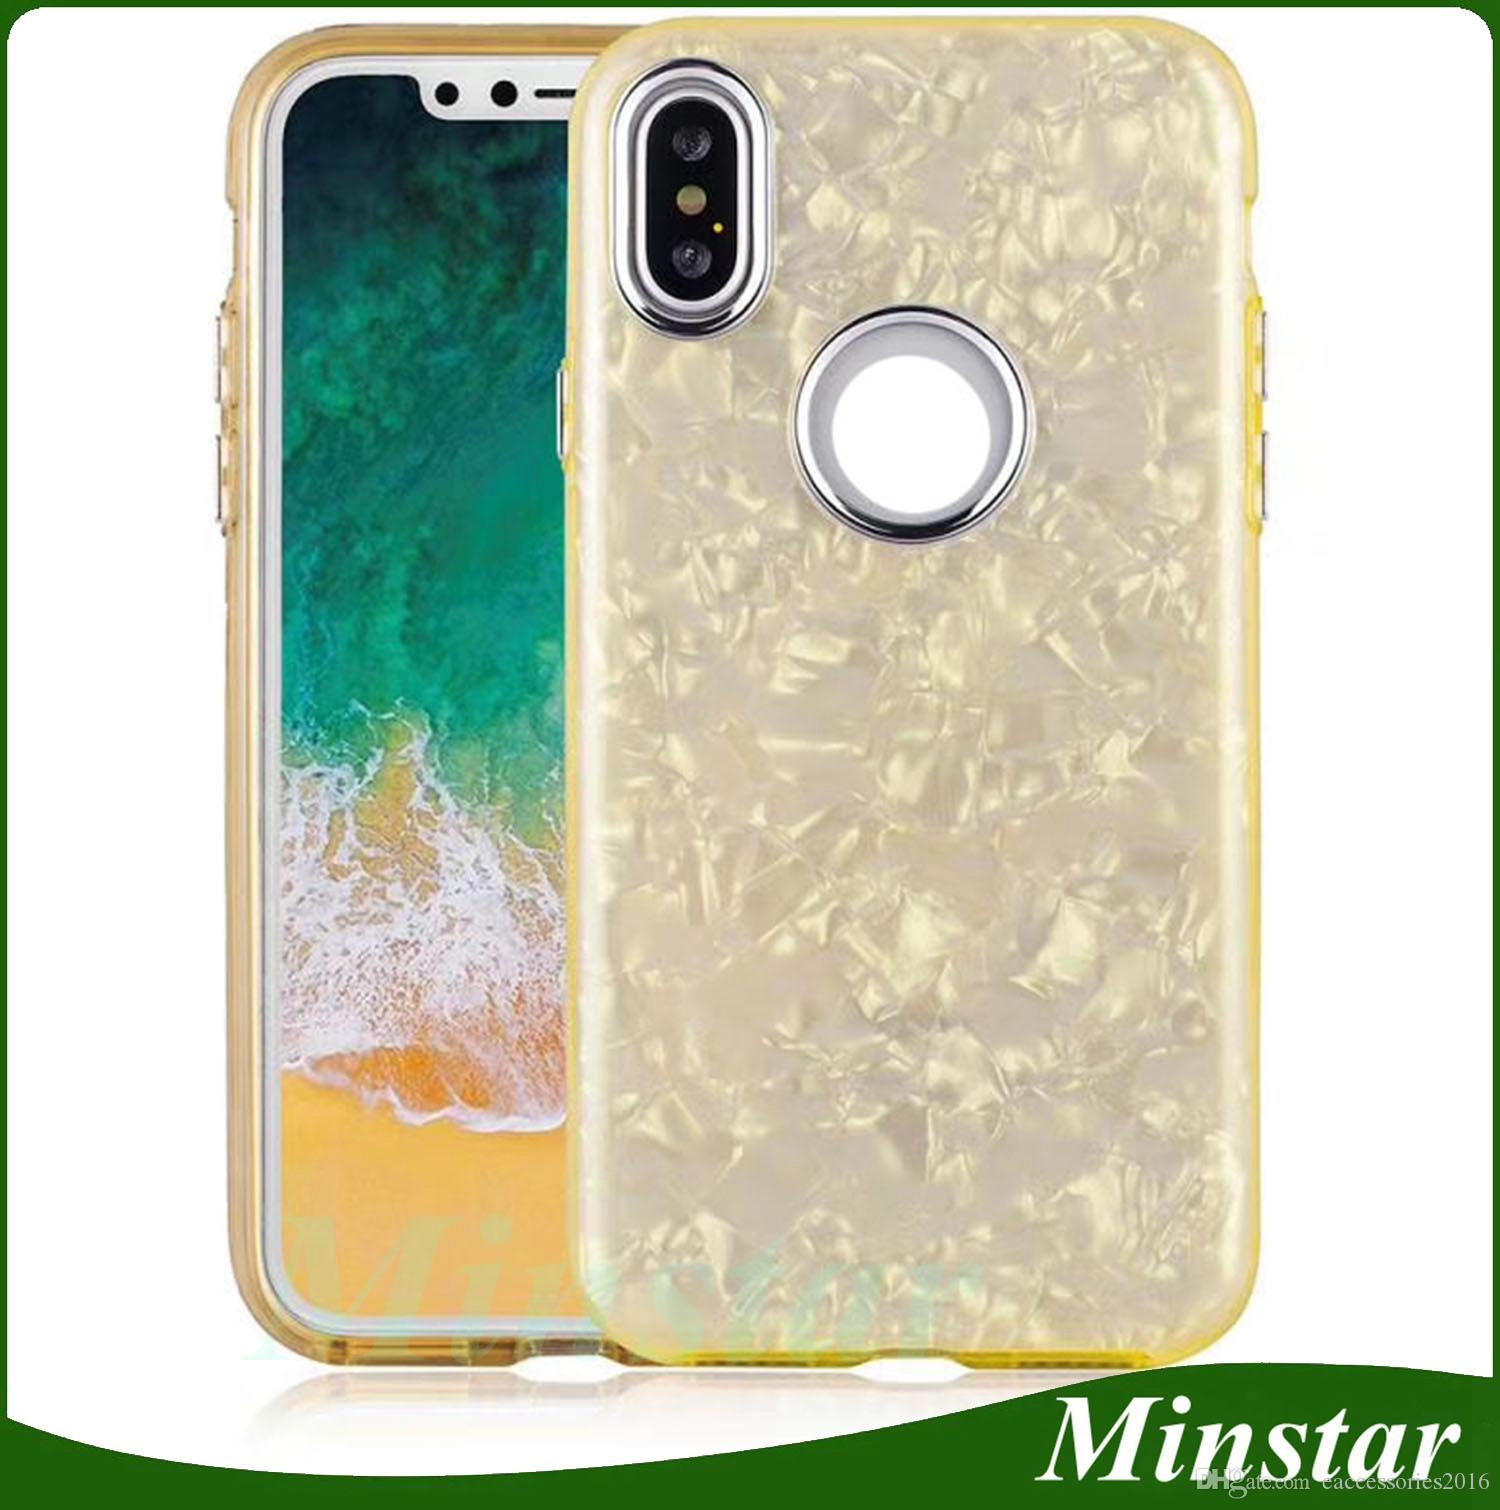 For Motorola E5 Play E4 Plus LG K8 2018 X Power 2 Stylo 3 ZTE Blade Force N9517 Warp 8 Boost Mobile PC TPU Shell Pattern Bling Glitter Case